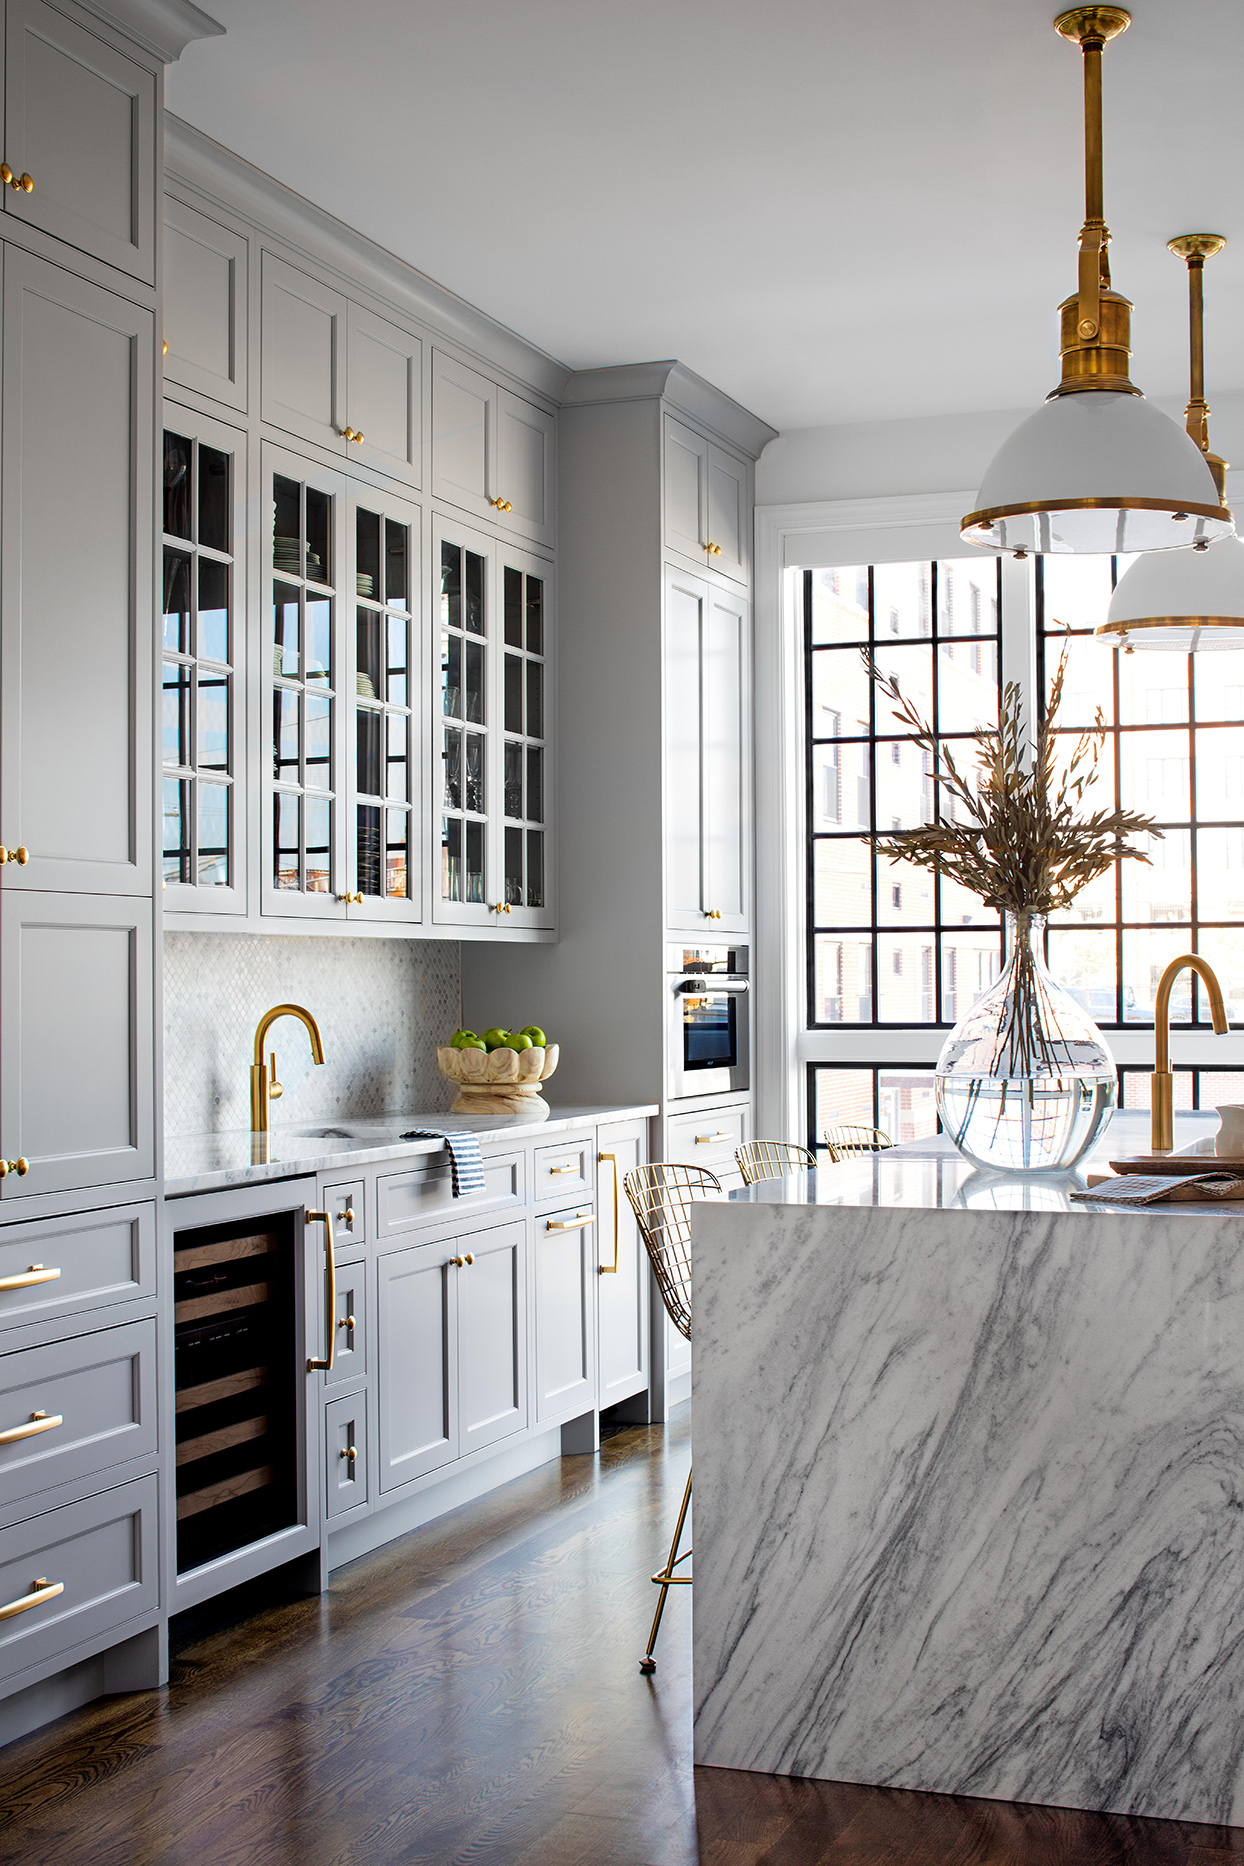 natural light flooding pastel gray kitchen with gold accents